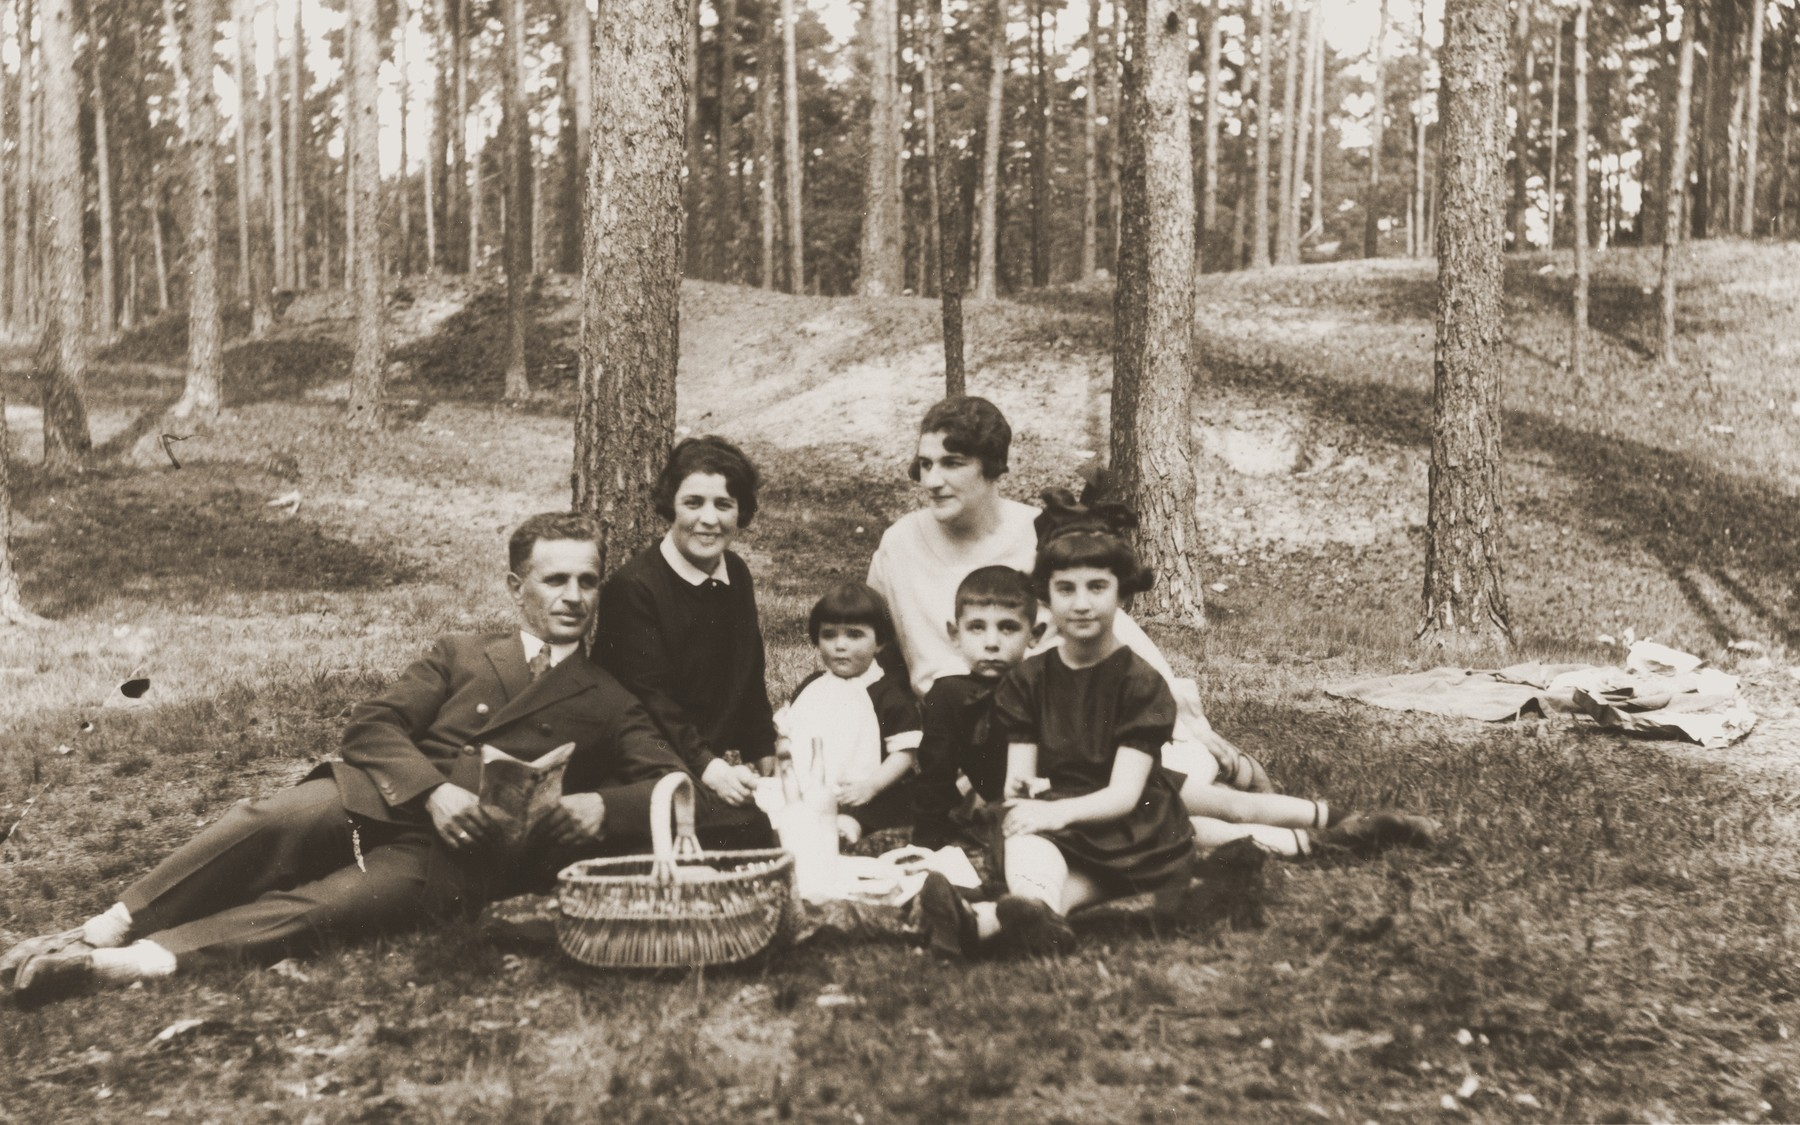 A Jewish family on a picnic in the woods near Riga.   Pictured are Cila Chankin, her husband, Jozef, and their three children.  All were killed during the war.  Cilia was the sister of Jacob Chankin, the donor's uncle.